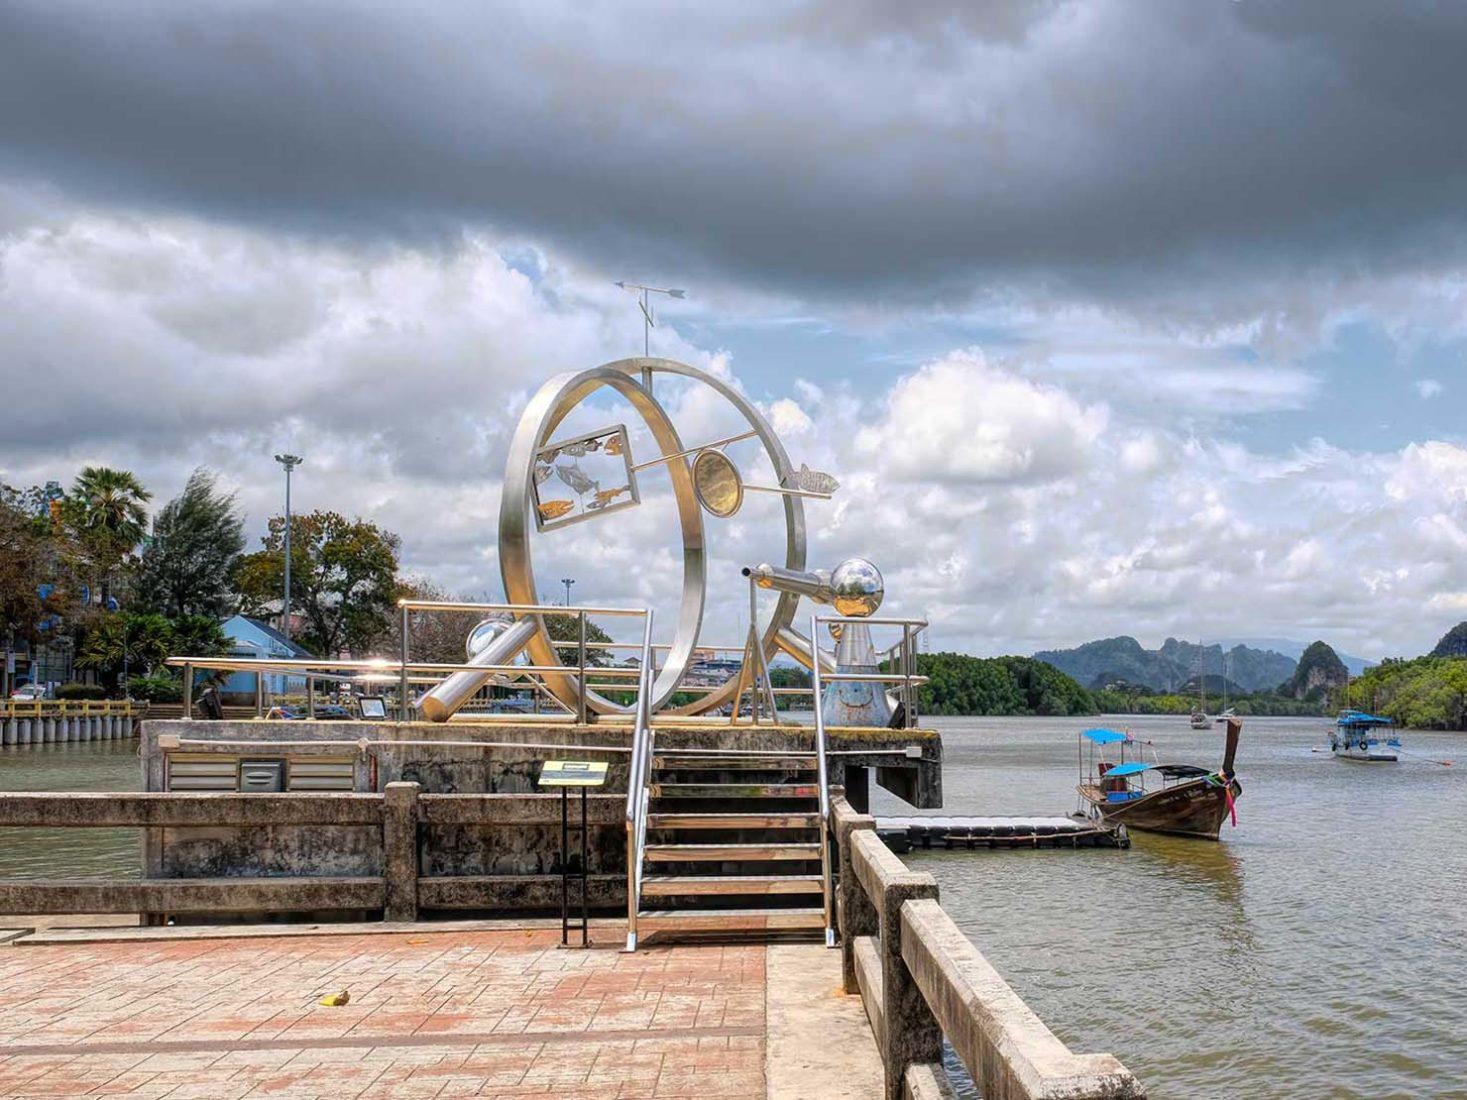 One of many outdoor sculptures along the riverfront in Krabi Town